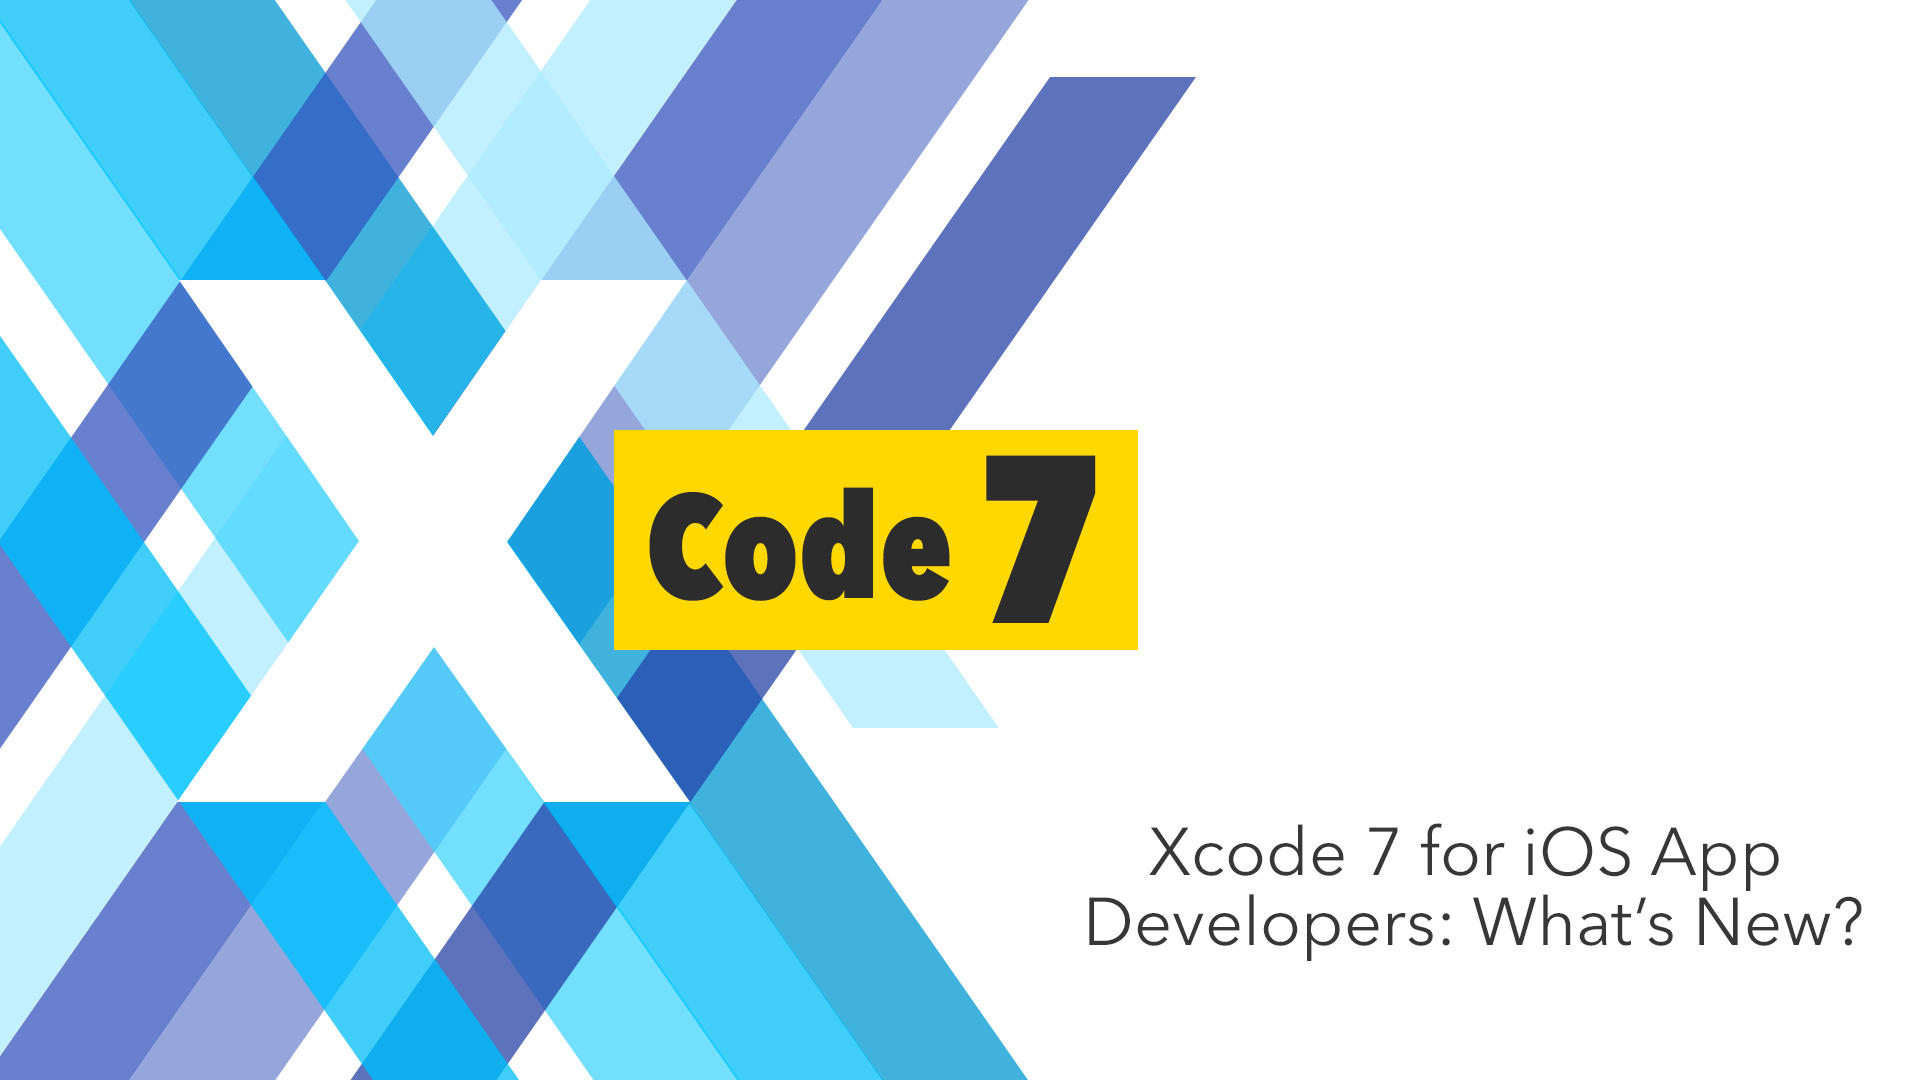 Best features of xcode 7